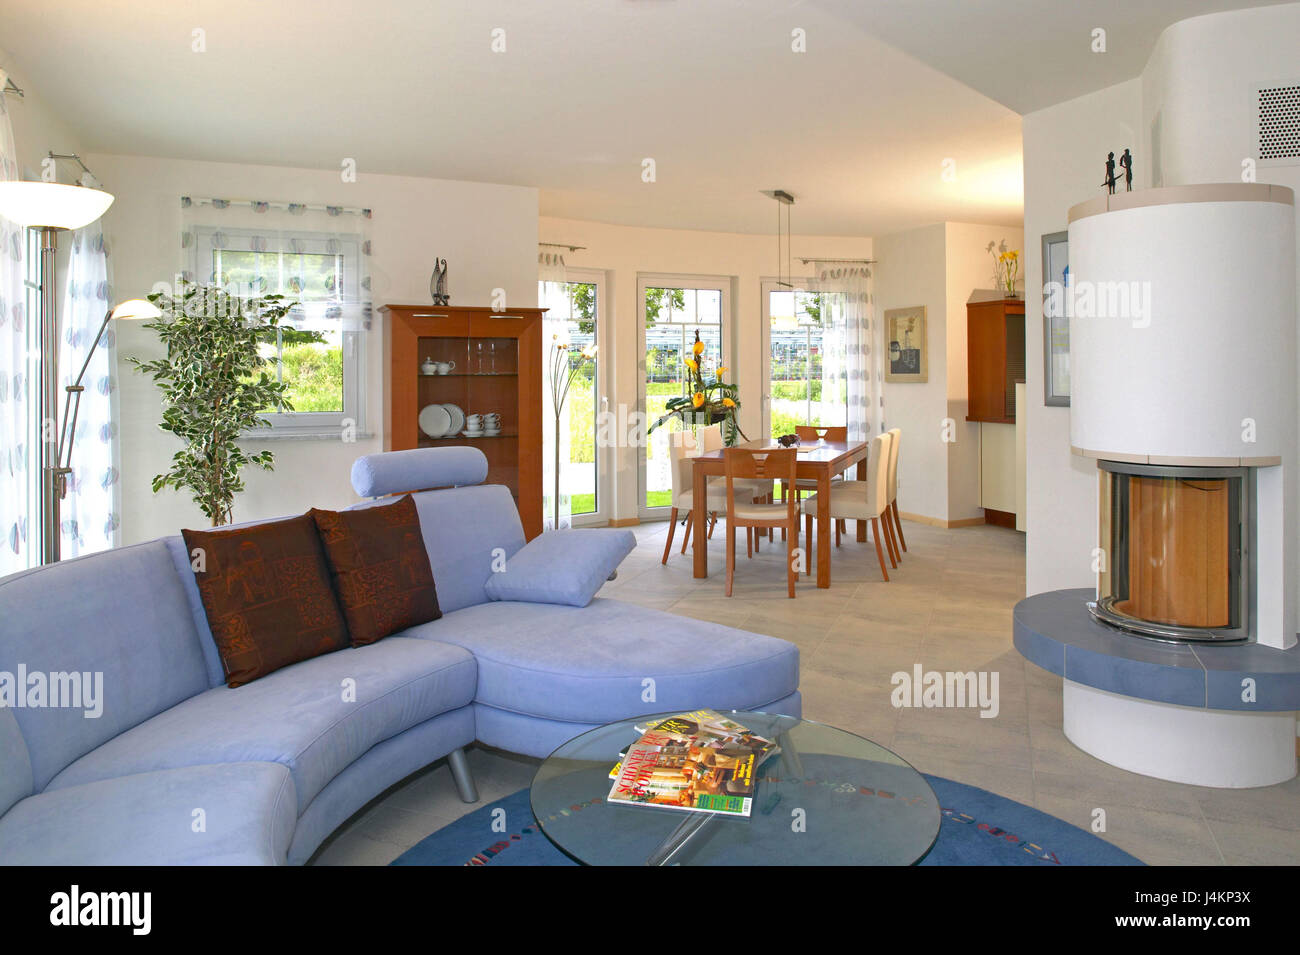 Single Family Dwelling Sitting Room Dining Room Flat